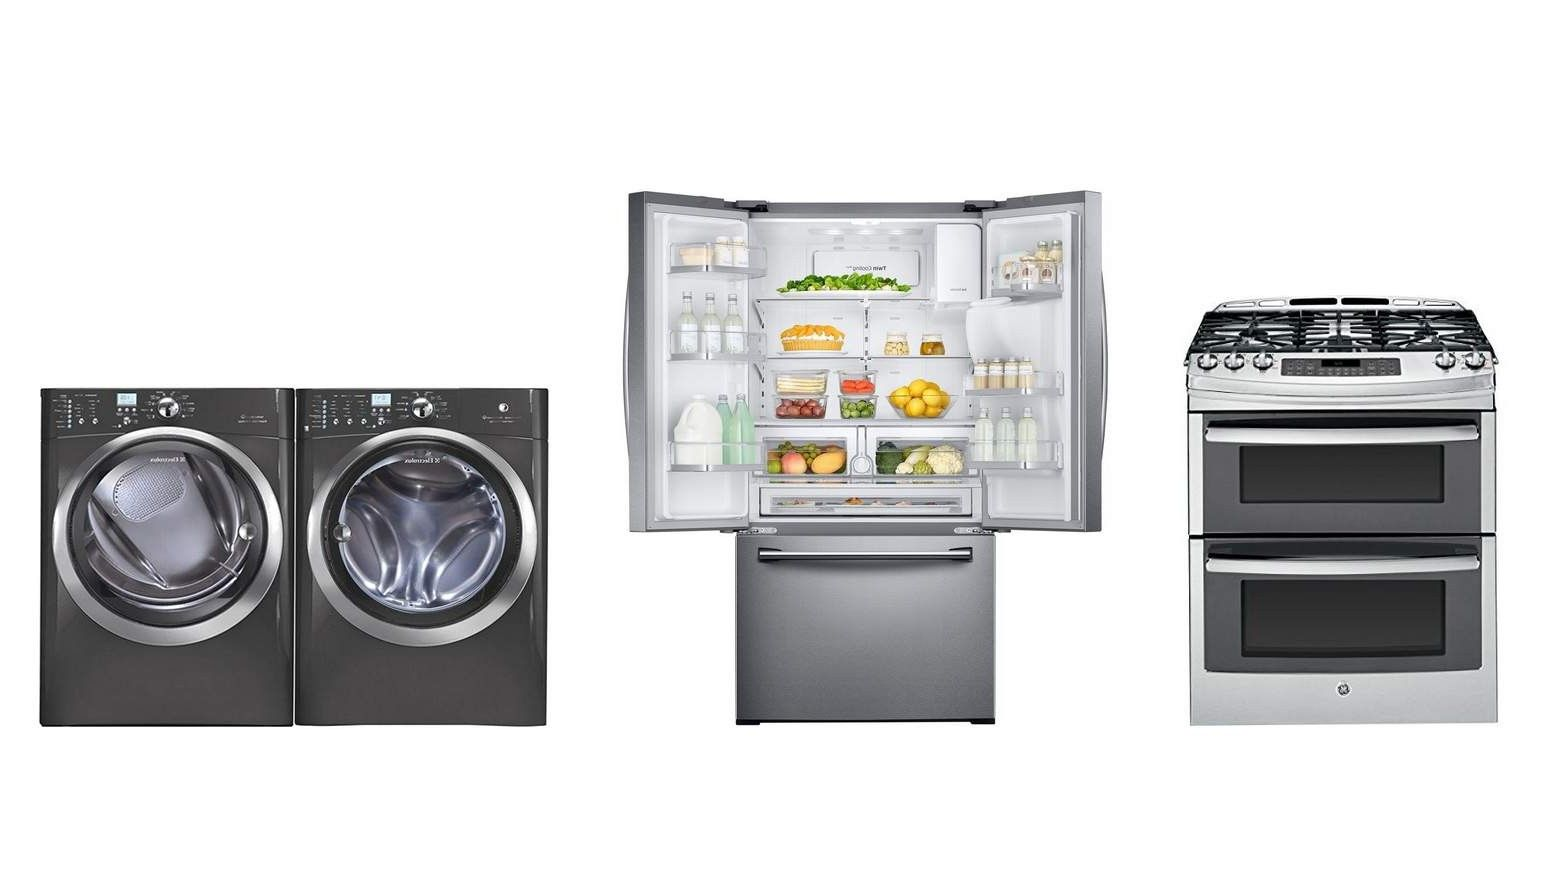 s best cyber monday appliance deals 2015 from Cyber Monday Kitchen ...